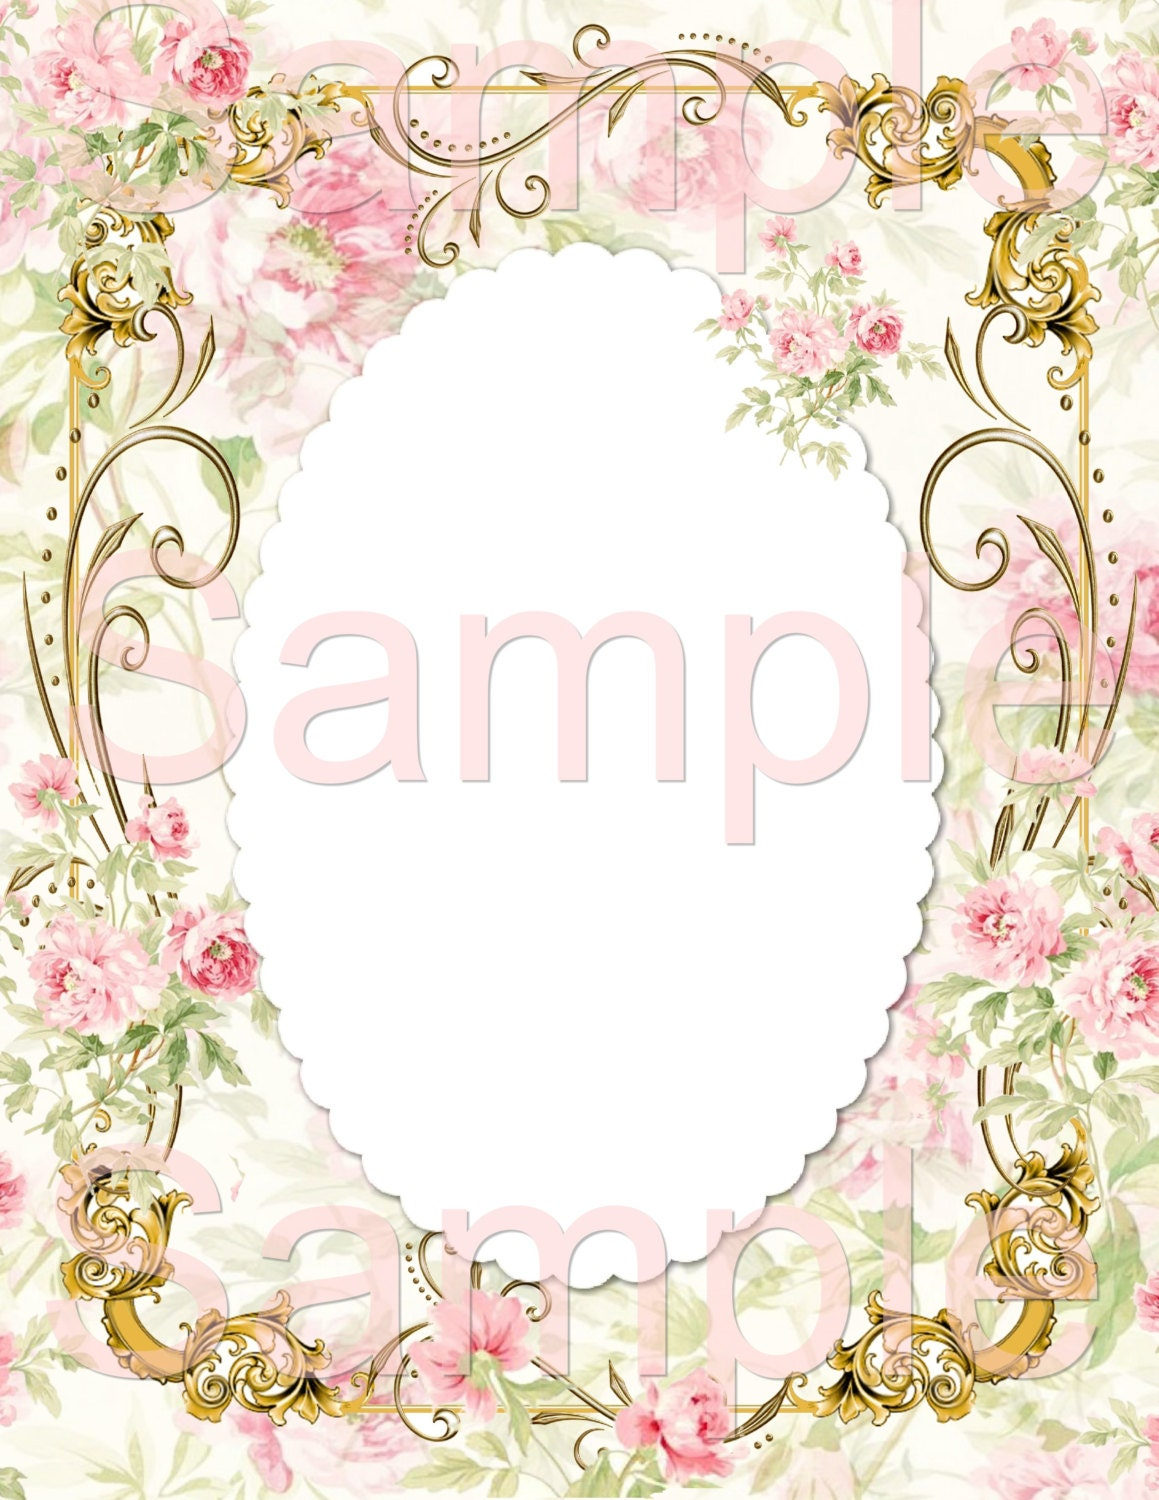 Gorgeous Background Fancy Frame 2 Add you Own Text